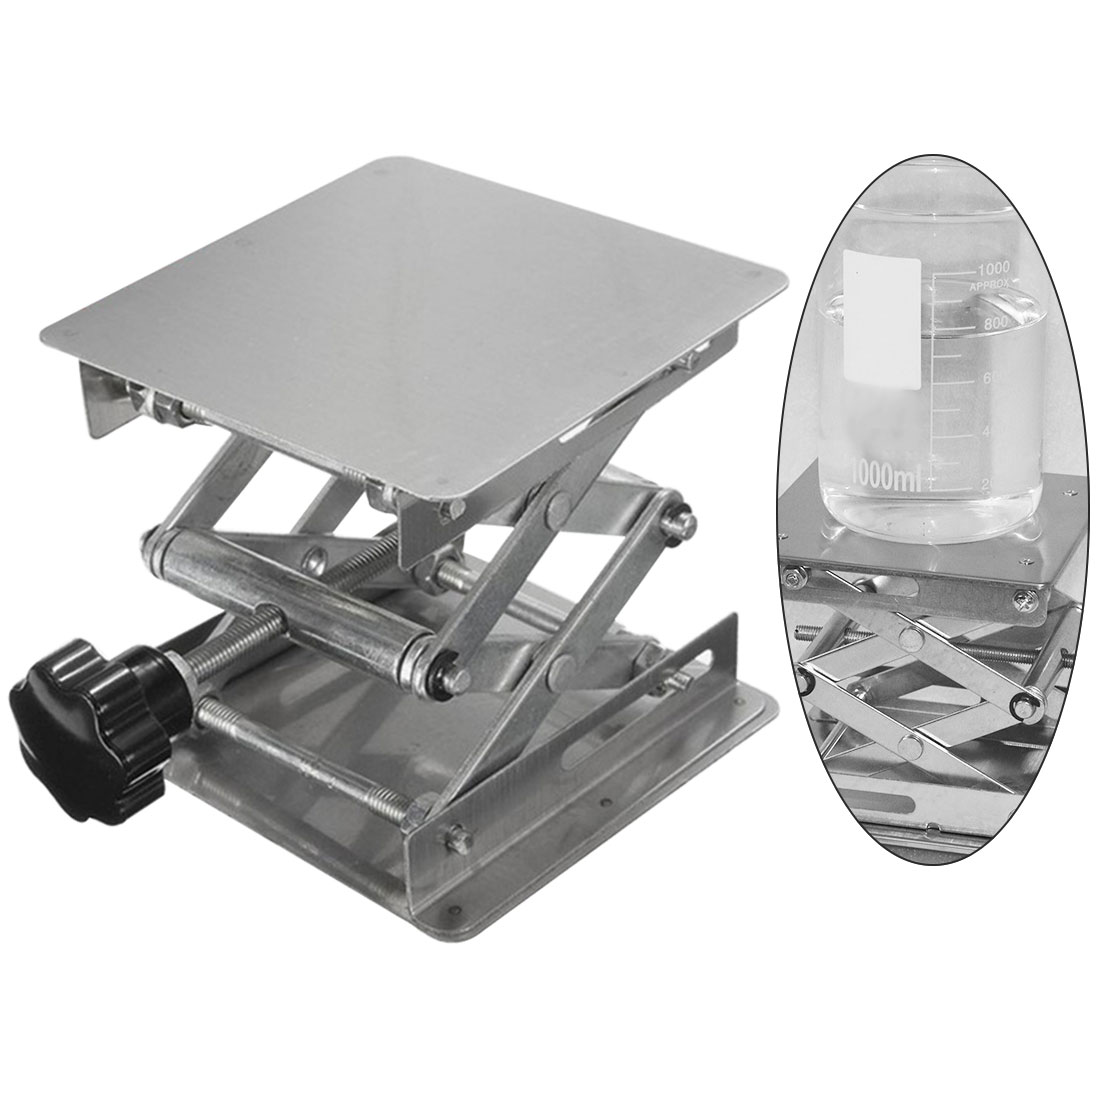 Stainless Steel Router Lift Table Woodworking Engraving Lab Lifting Stand Rack Lift Platform100x100mm